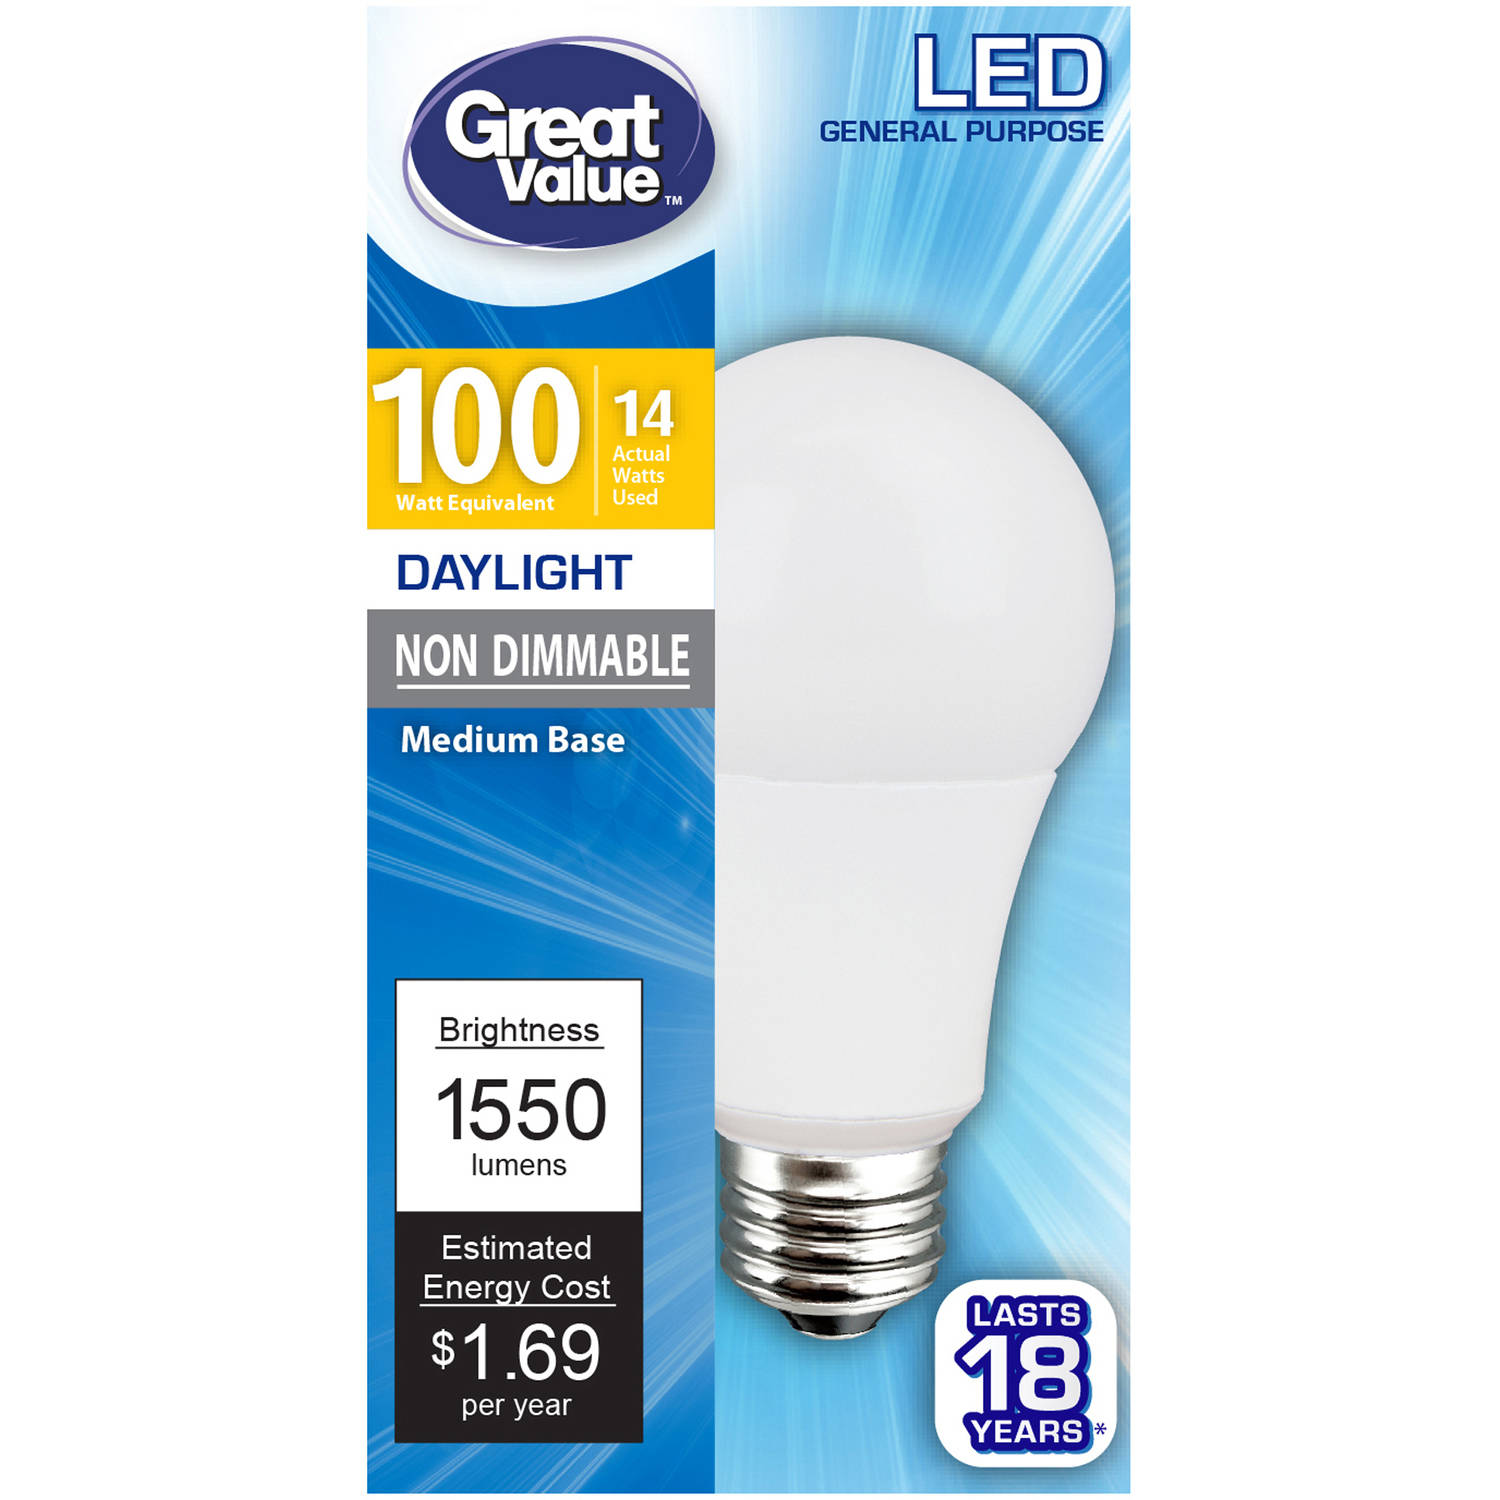 Great Value LED Light Bulb, 14W (100W Equivalent), Daylight